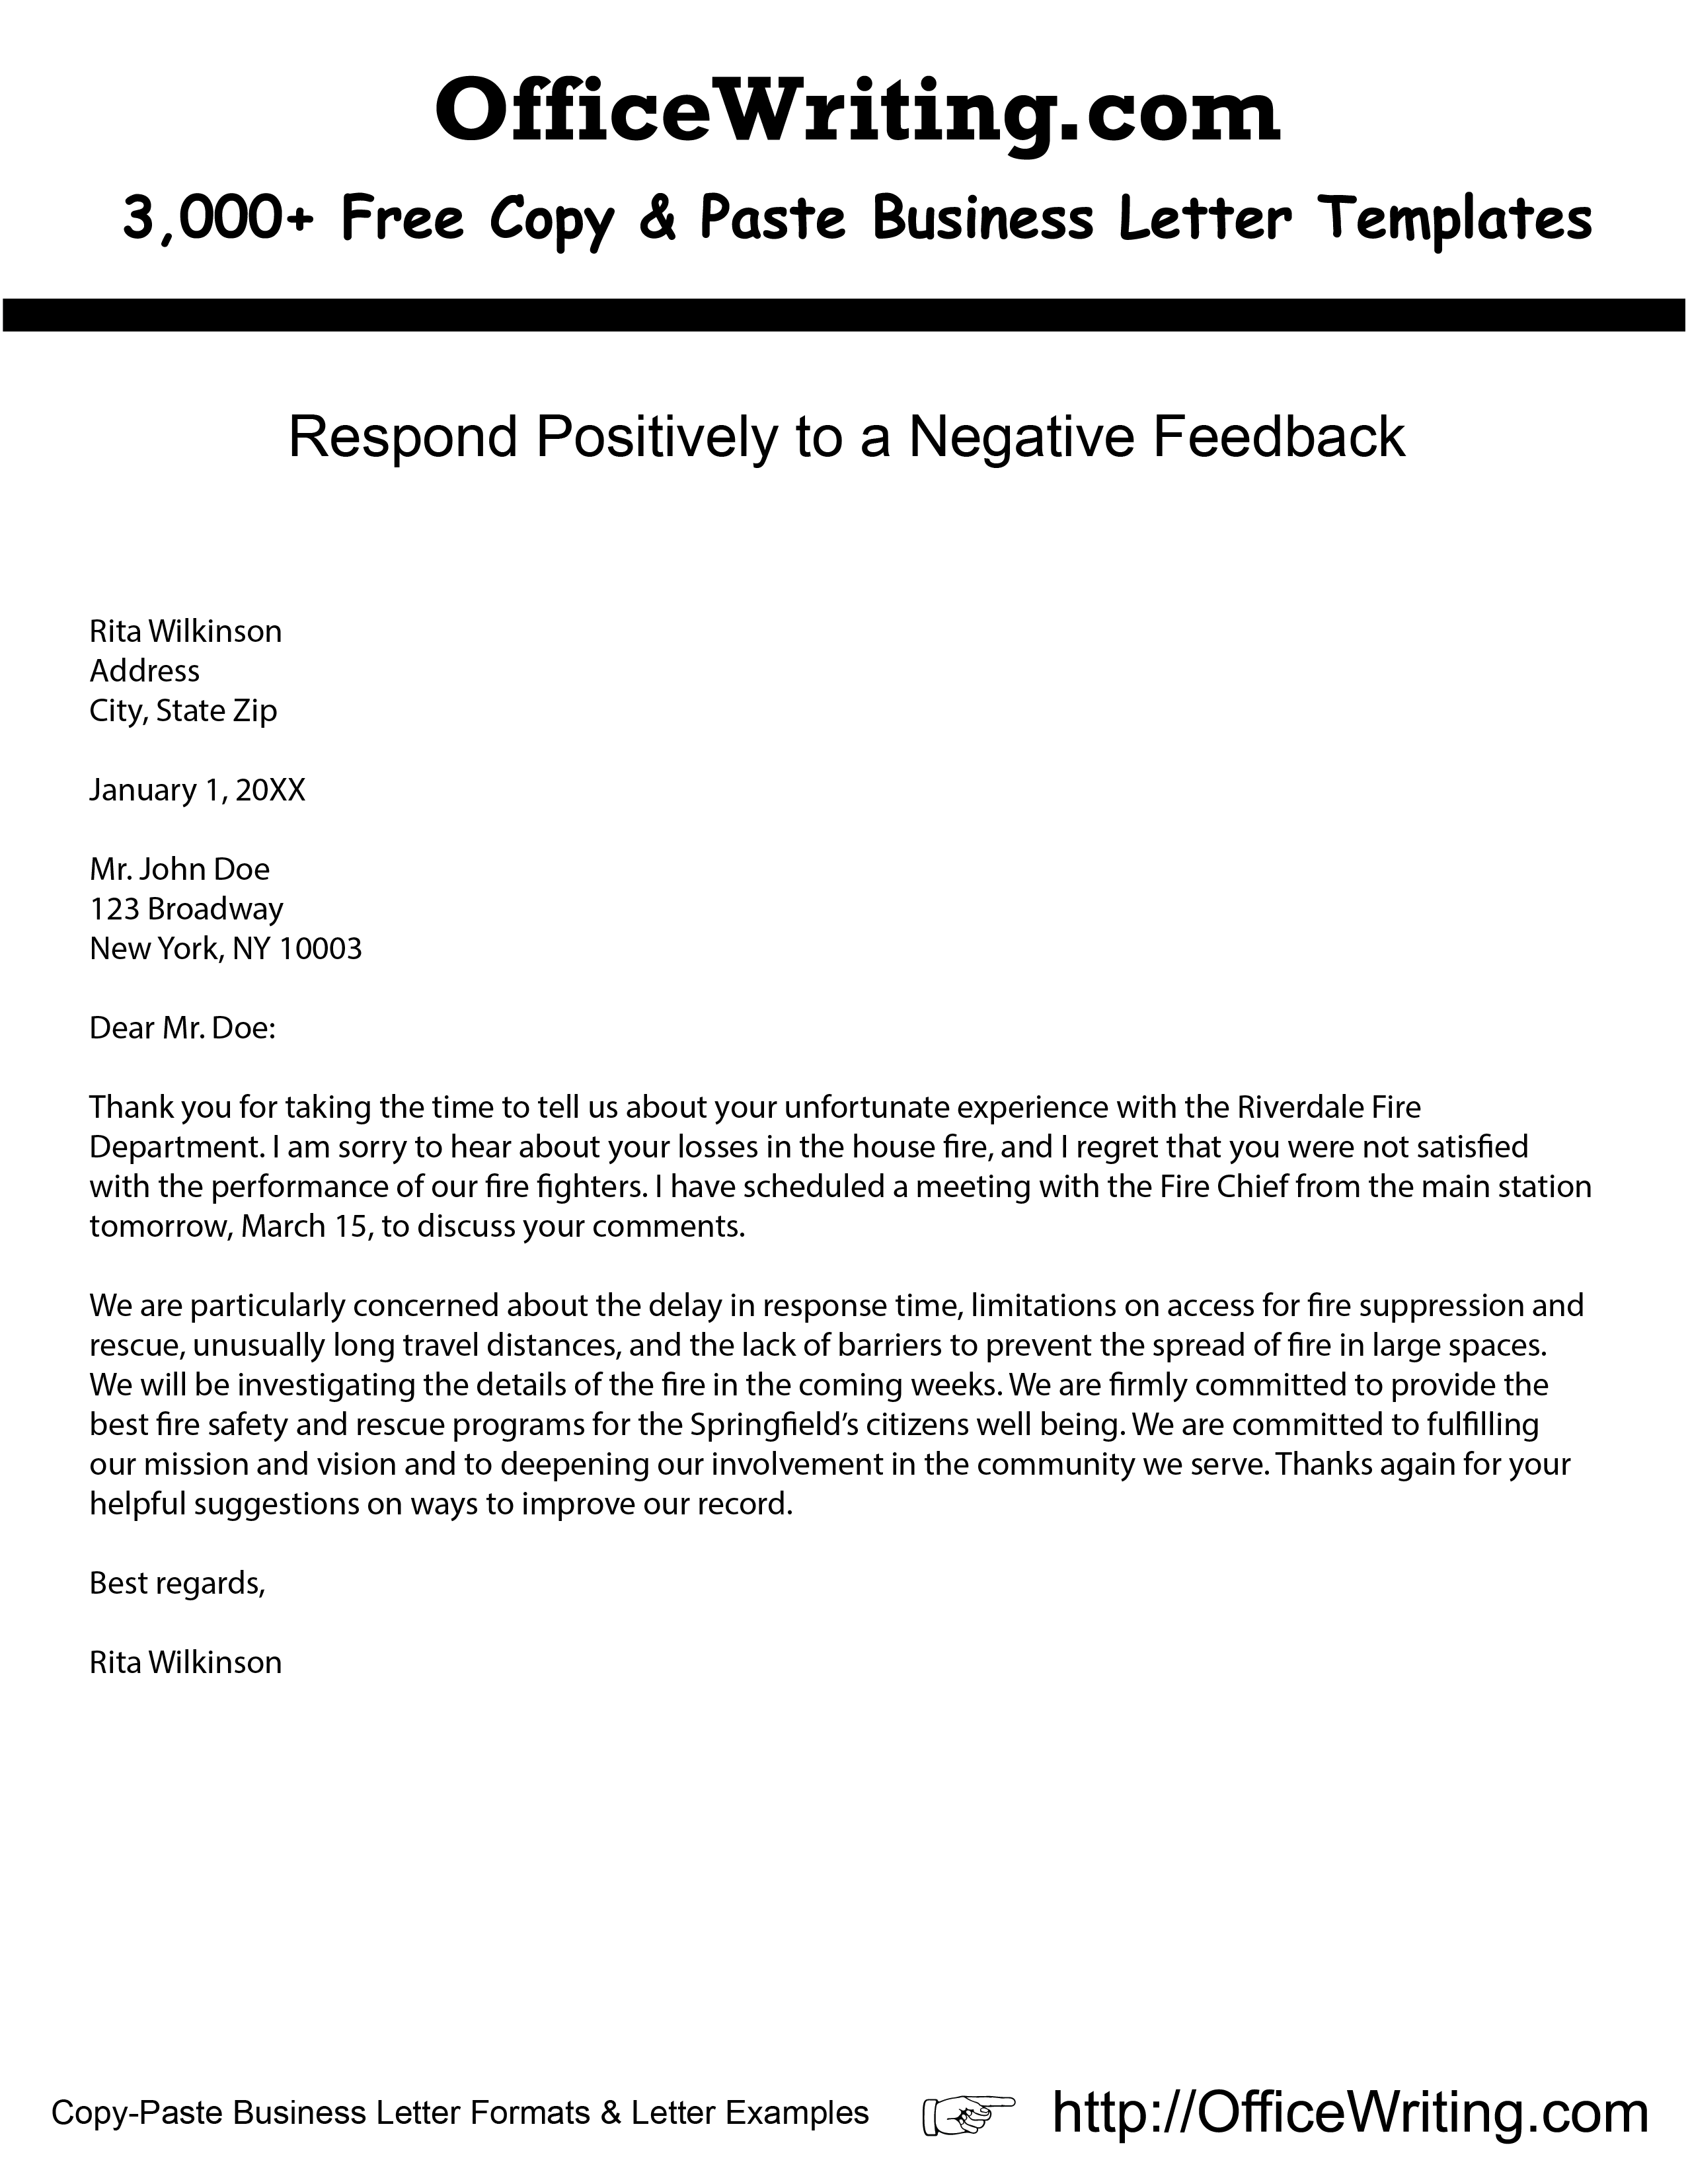 Respond Positively to a Negative Feedback. Check our over 3000 FREE ...